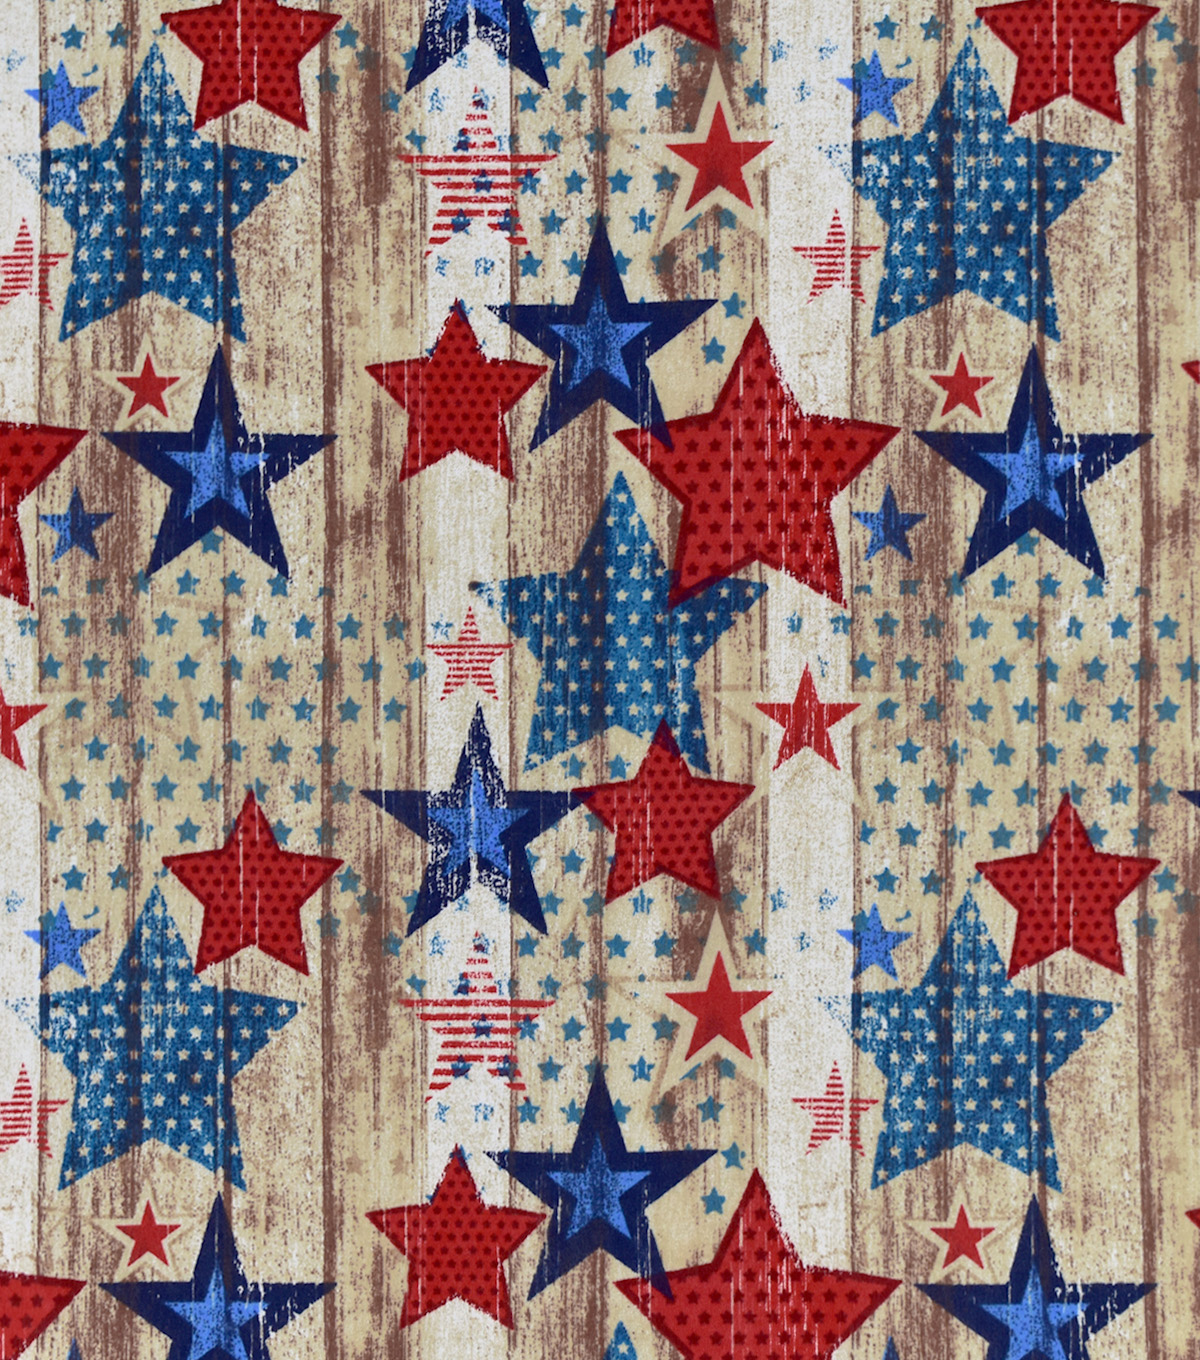 Snuggle Flannel Fabric-Red White Blue Vintage Stars On Wood